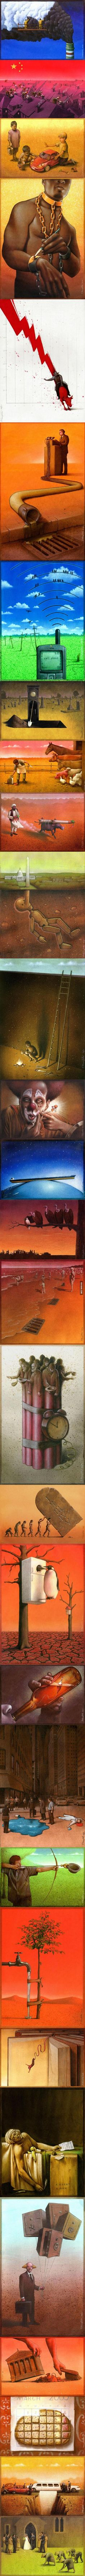 30 Satirical images created by Pawel Kuczynski